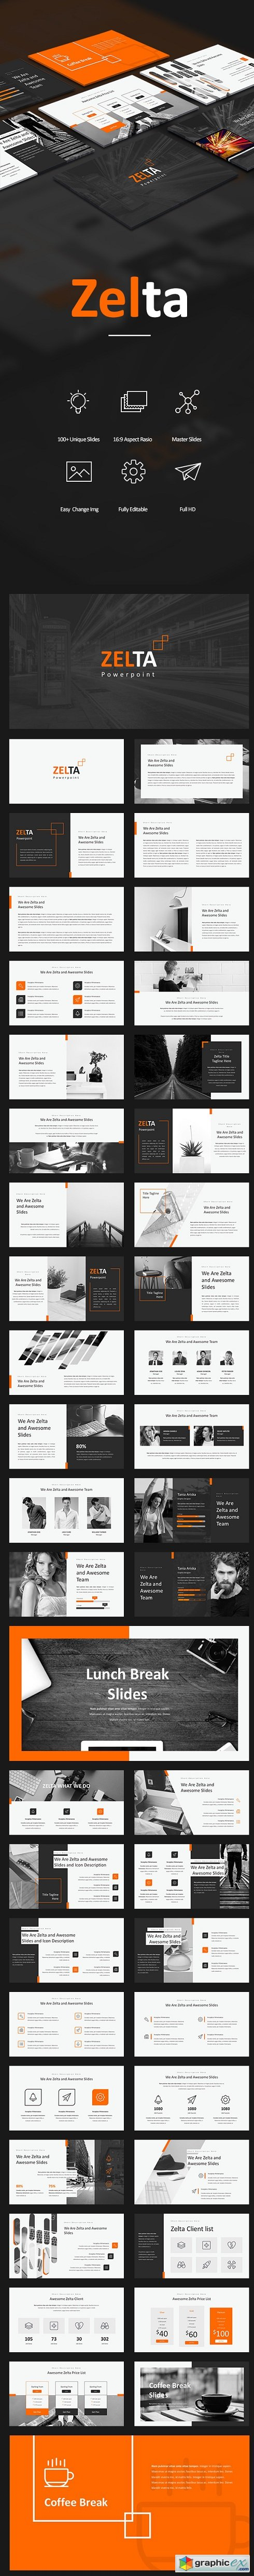 Graphicriver Zelta Powerpoint